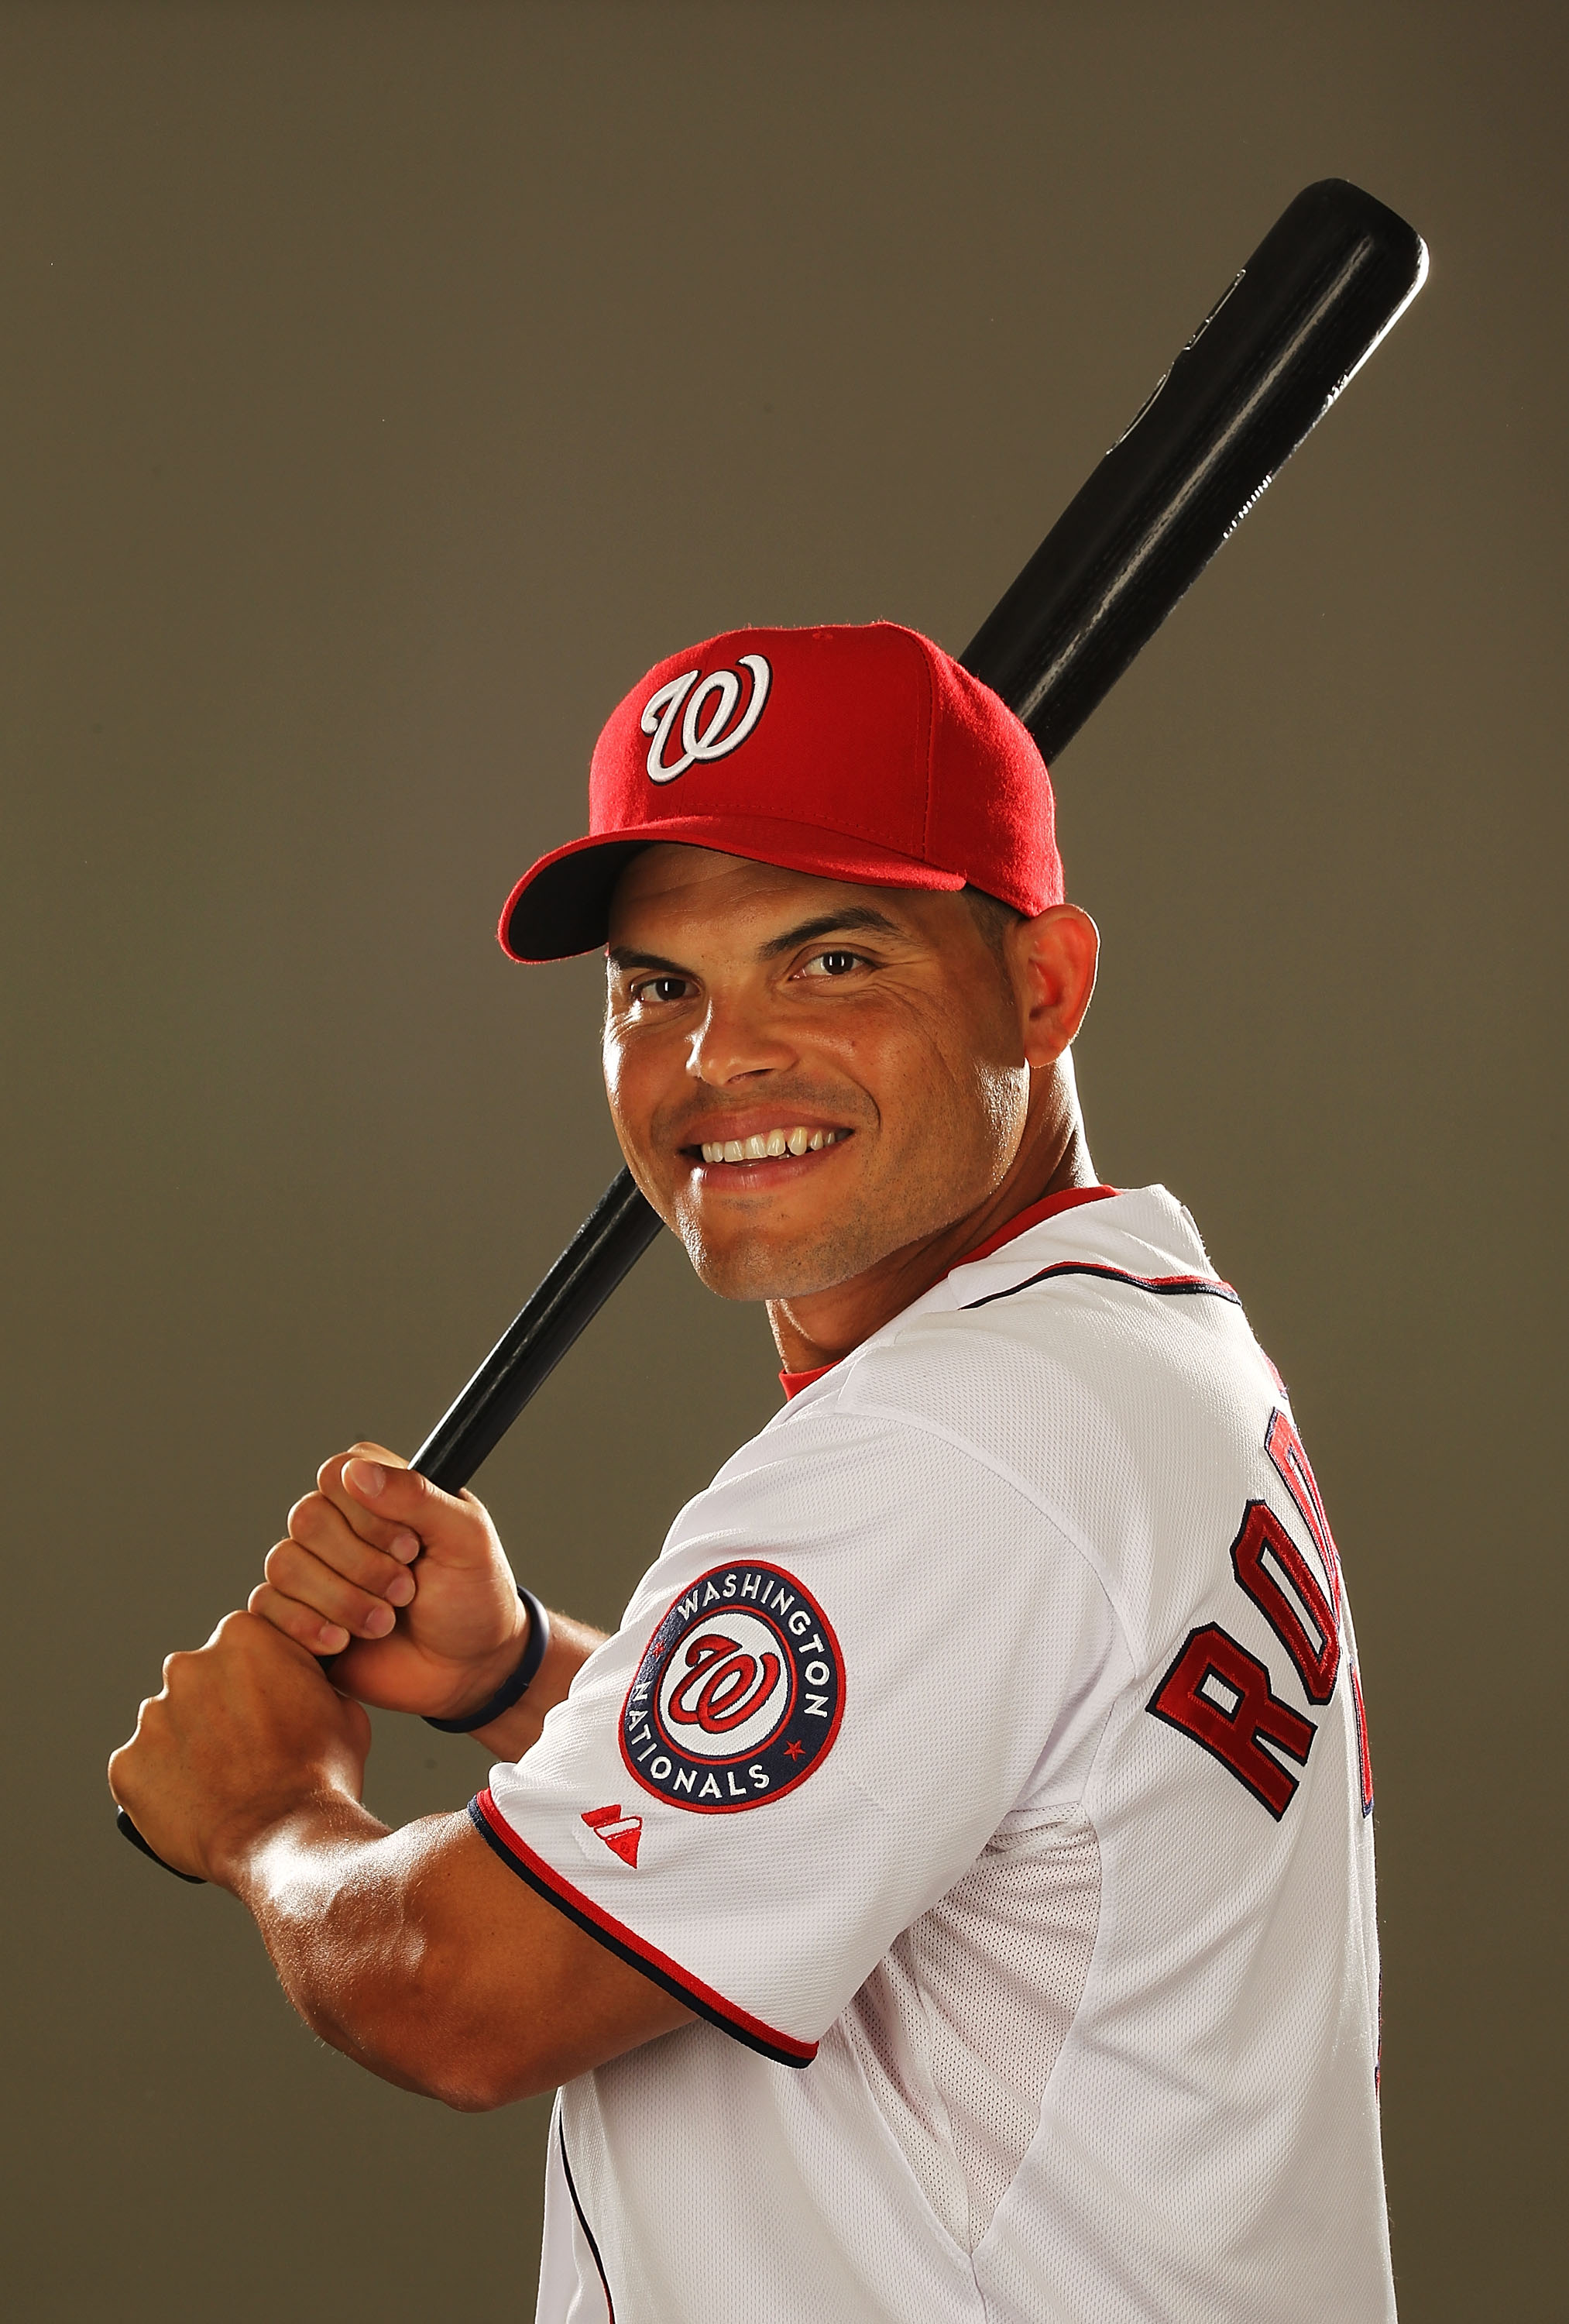 VIERA, FL - FEBRUARY 25:  Ivan Rodriguez #7 of the Washington Nationals poses for a portrait during Spring Training Photo Day at Space Coast Stadium on February 25, 2011 in Viera, Florida.  (Photo by Al Bello/Getty Images)